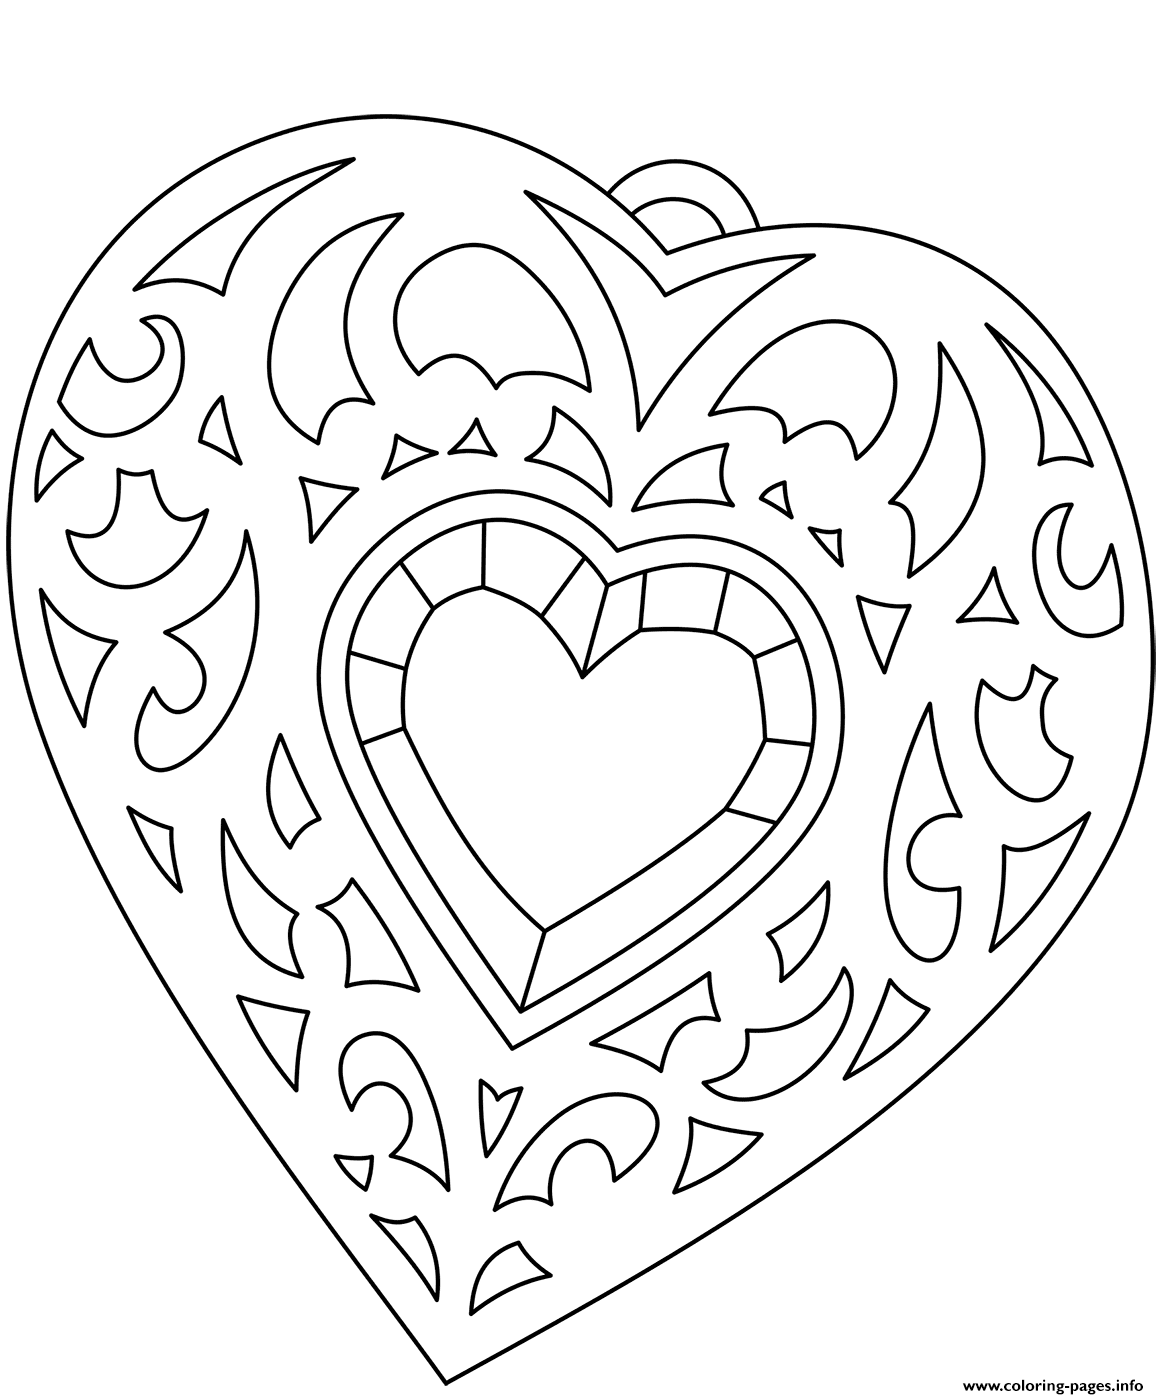 Heart Shaped Medallion coloring pages